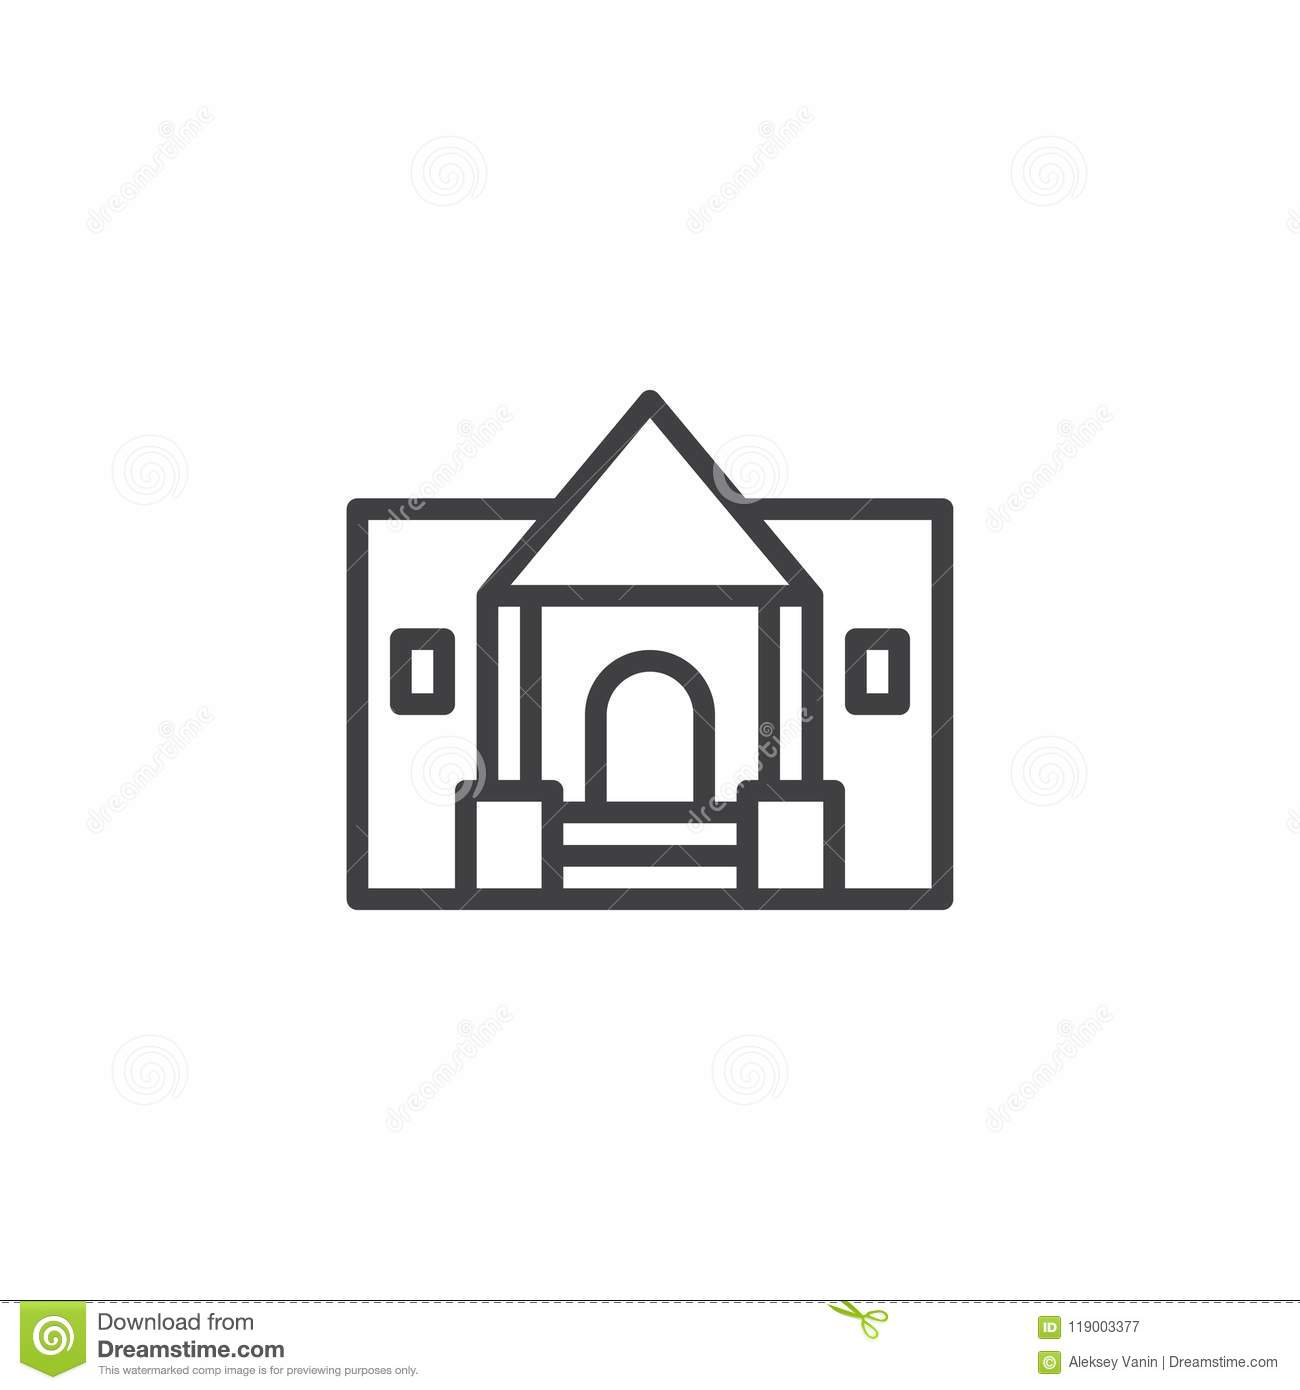 Museum Building Outline Icon Stock Vector - Illustration of ancient